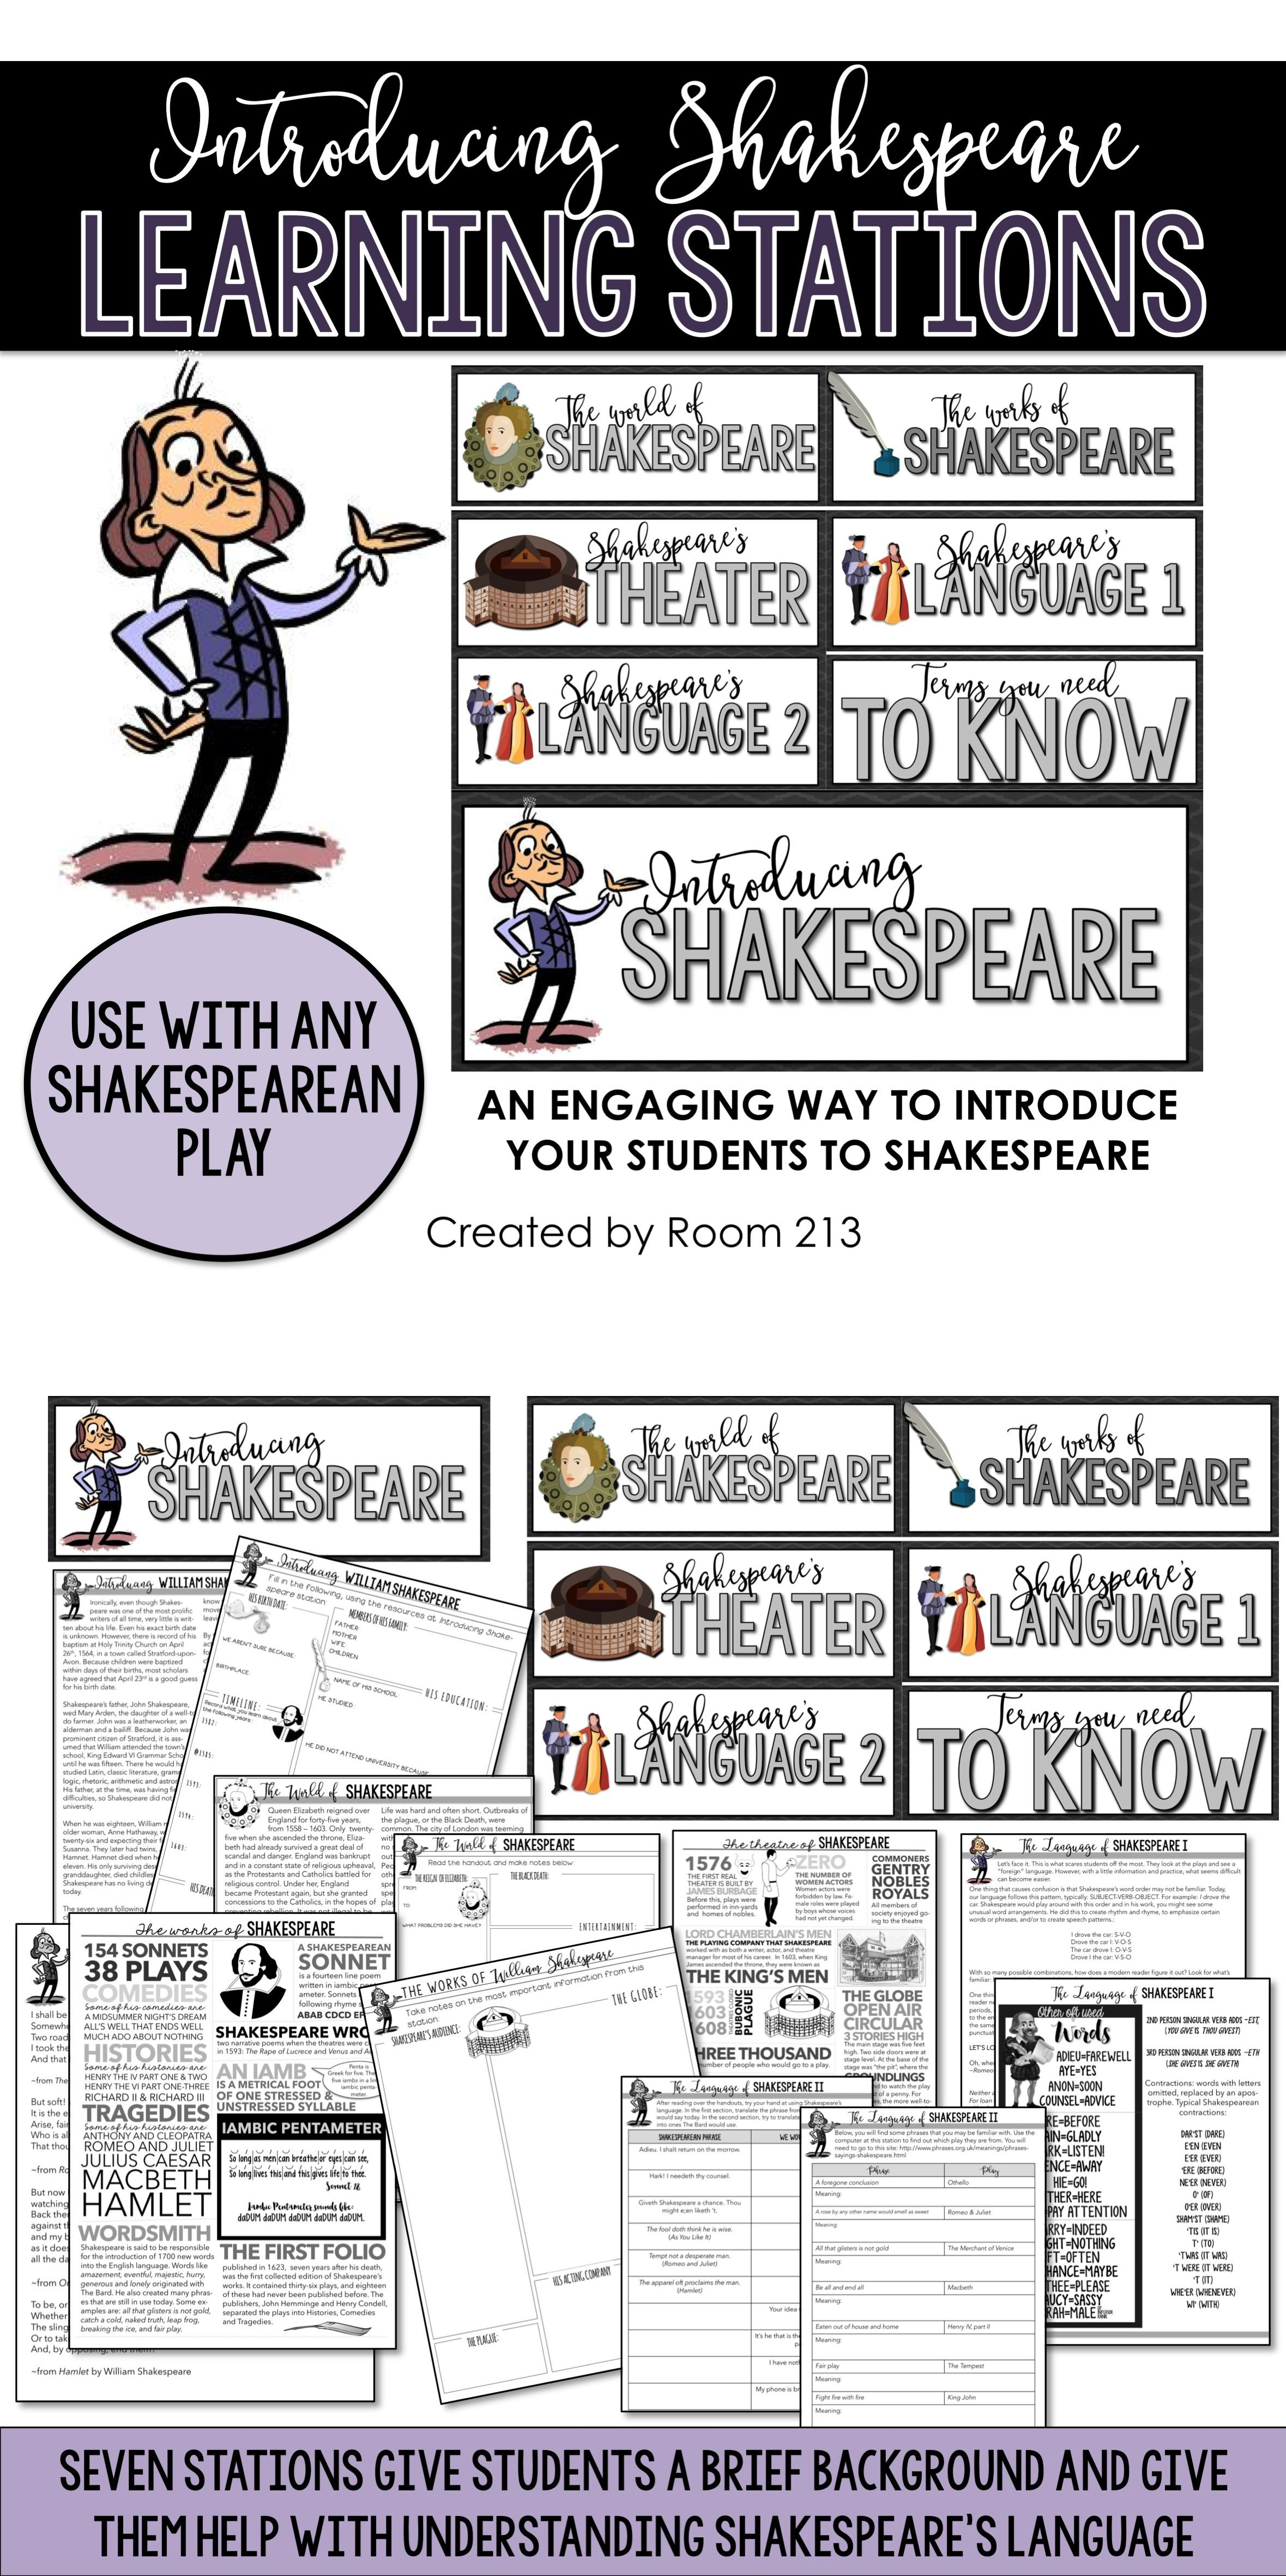 Introduction To Shakespeare Learning Stations Learning Stations Teaching Shakespeare Shakespeare Lessons